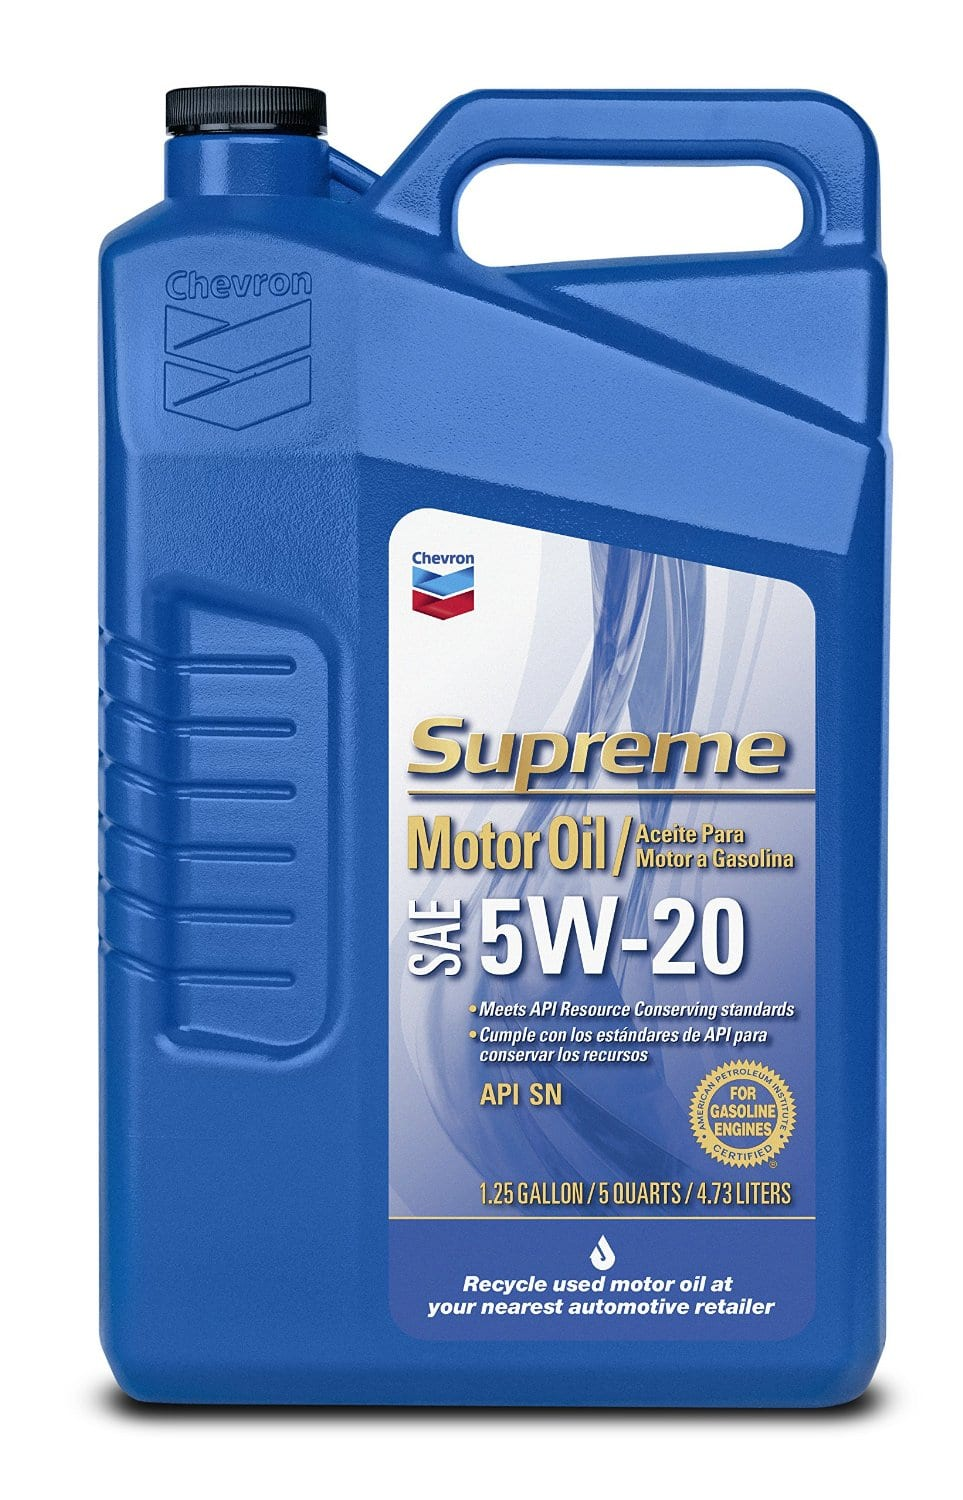 5-Quarts of Chevron Supreme Conventional Motor Oil (5W-20)  $5 after $5 Rebate + Free Store Pickup